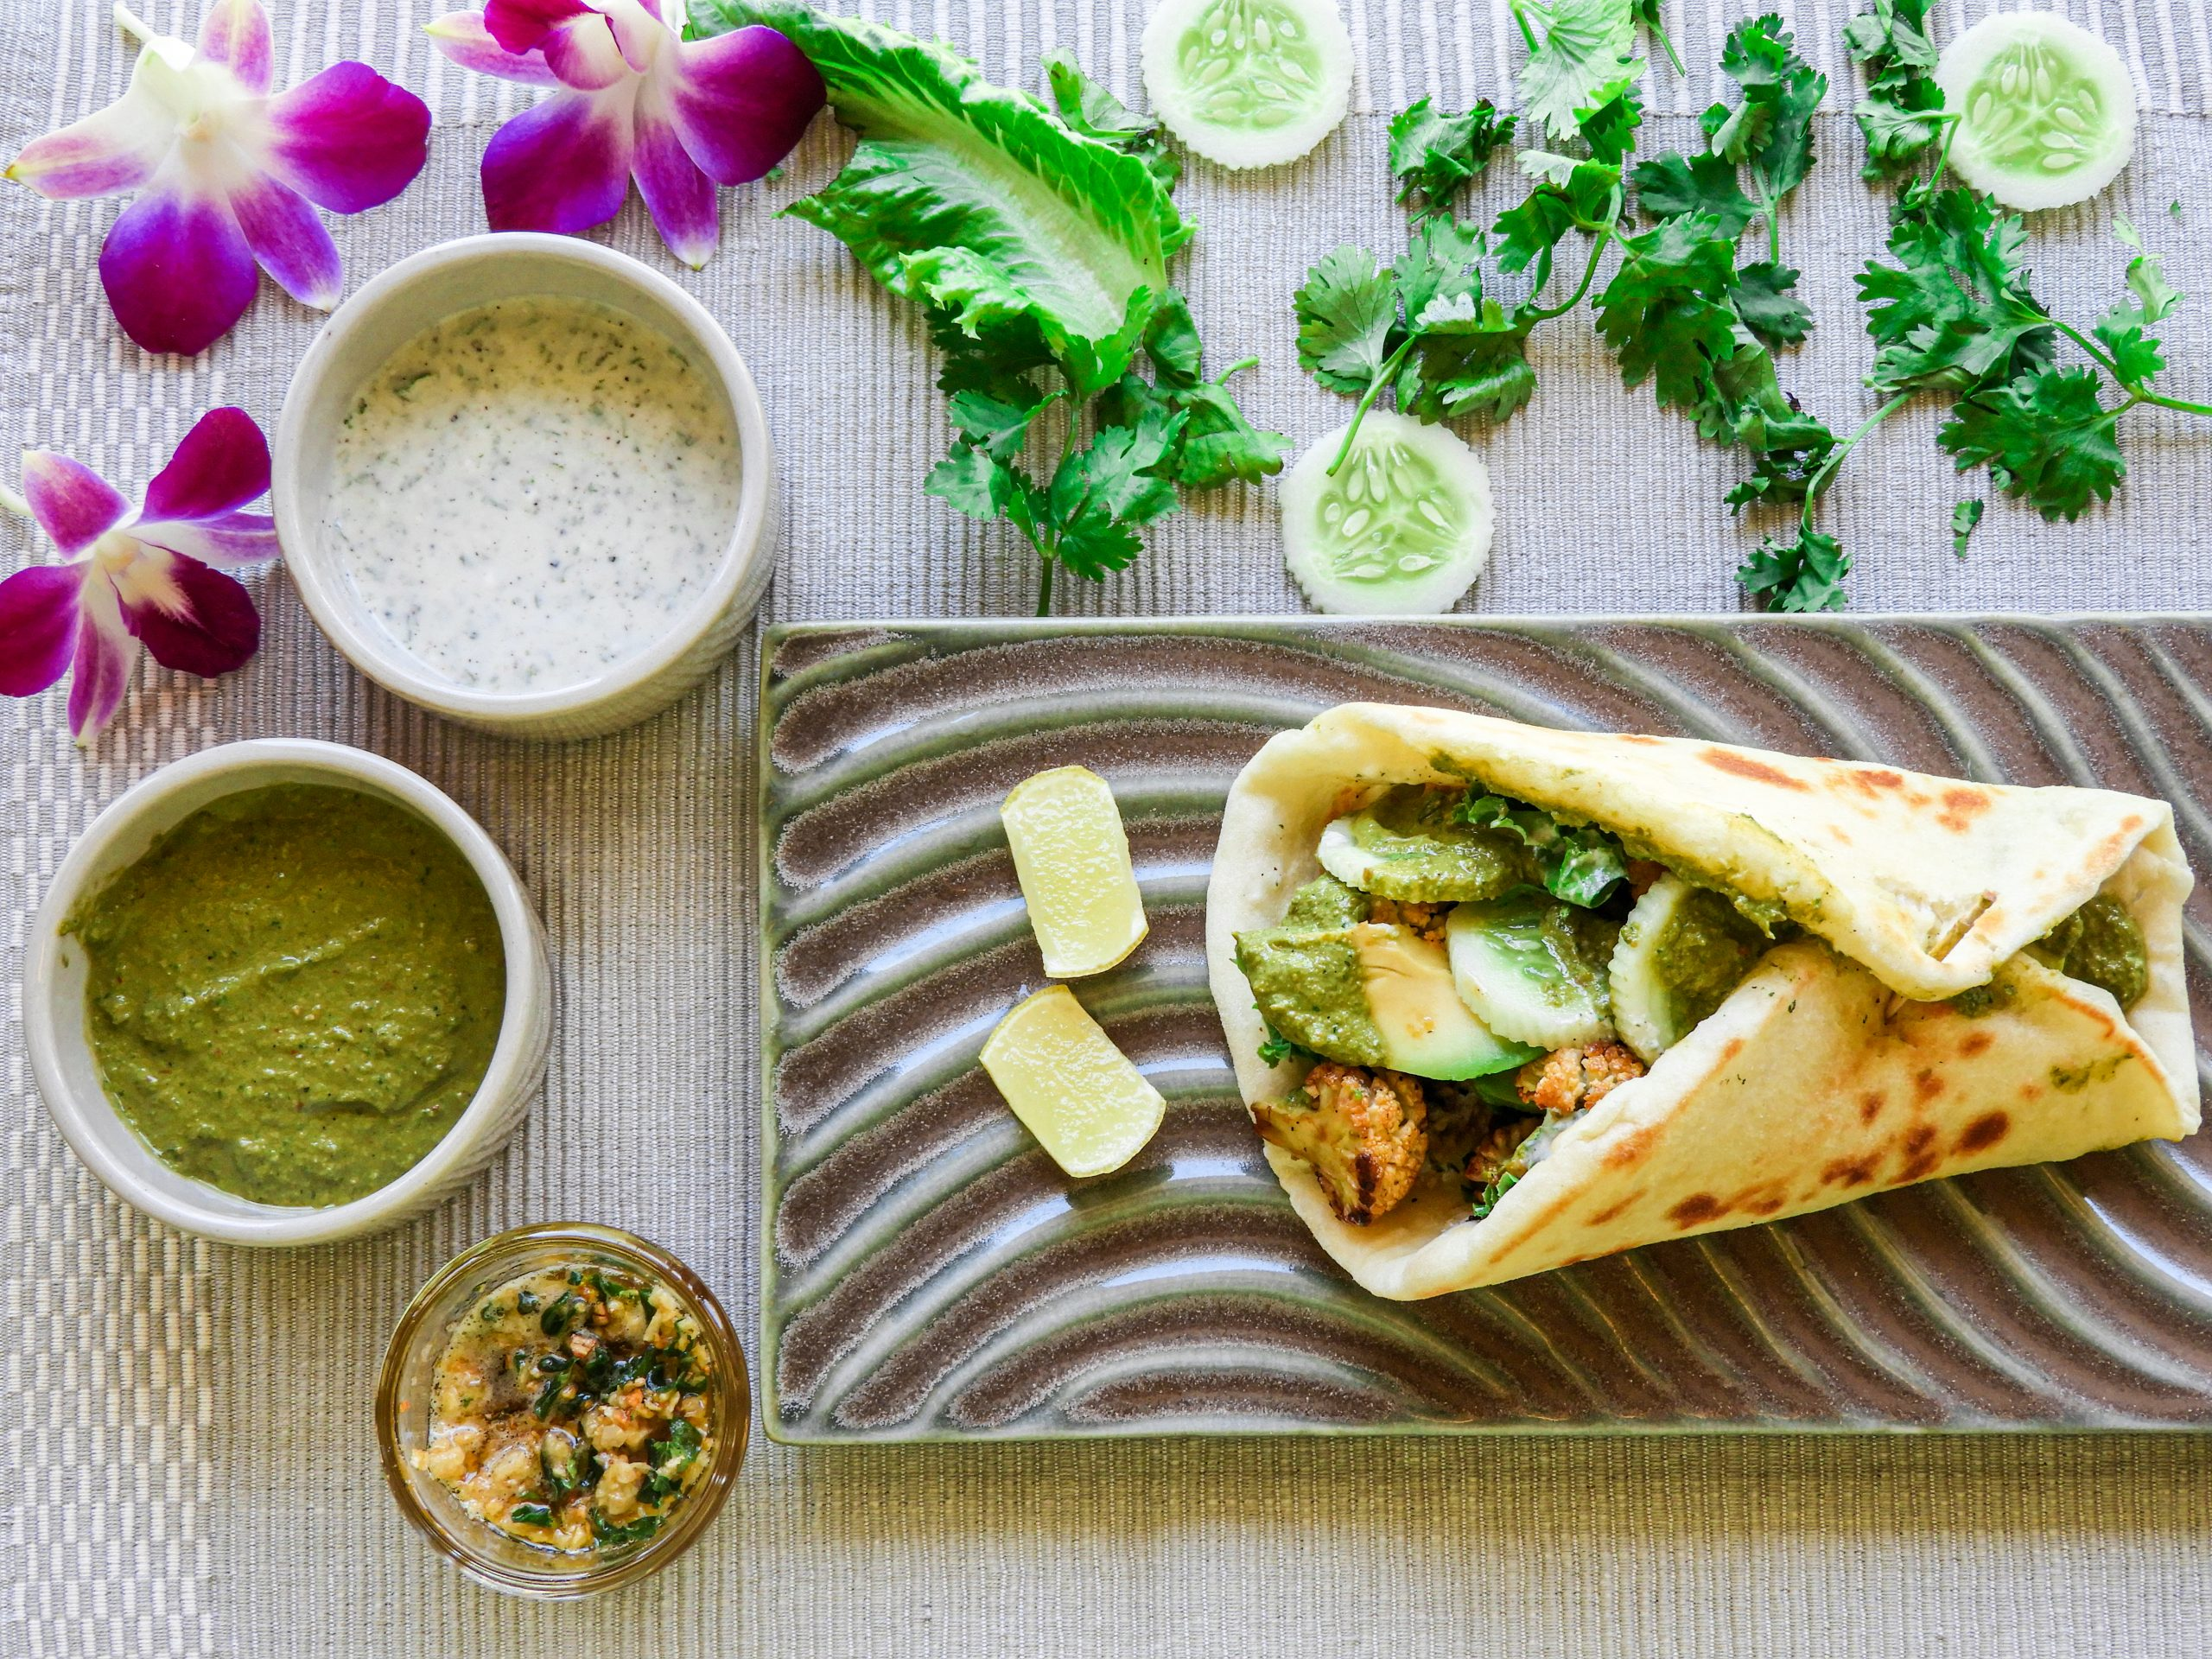 Spicy Baked Cauliflower Naan Wraps - Asian cuisine at Kitchen by Nidhi